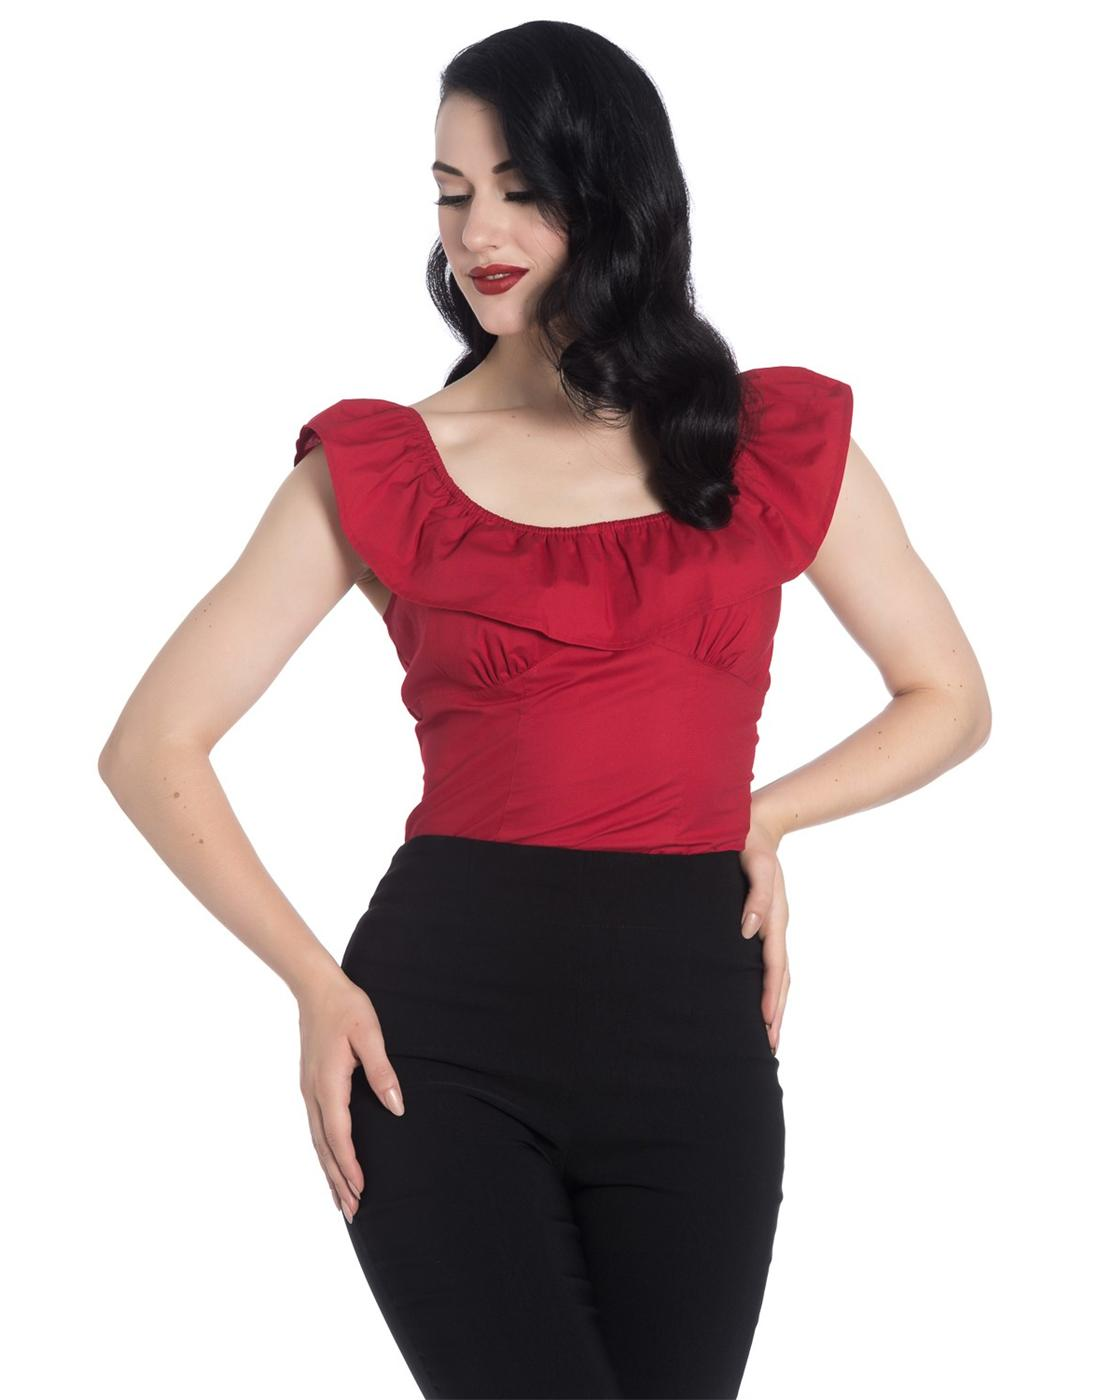 Rio HELL BUNNY Retro 50s Ruffle Collar Top in Red